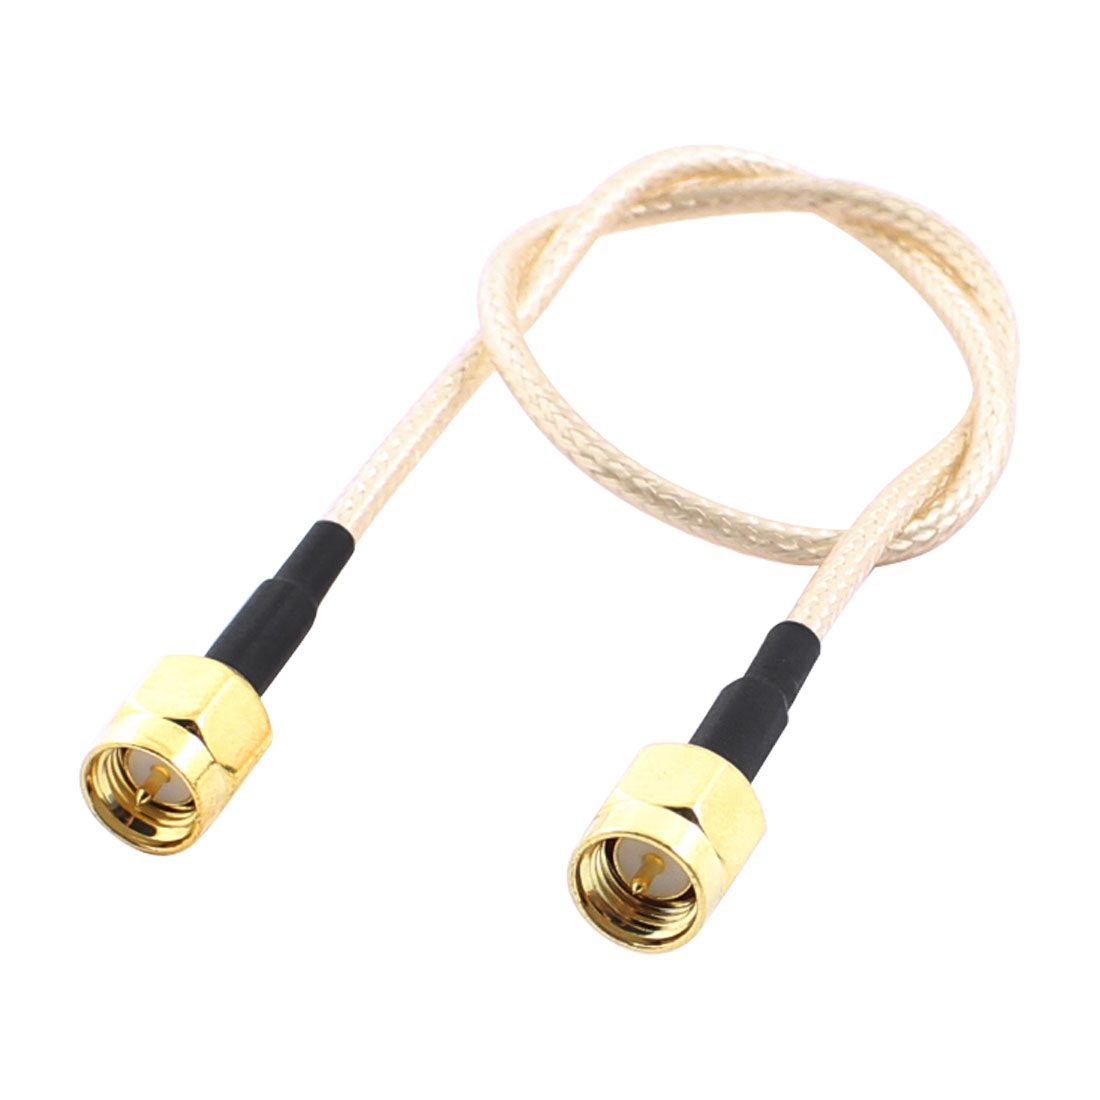 26.5mm Length SMA Male to Male Double Shield RF Antenna Pigtail Coaxial Cable Adapter Connector